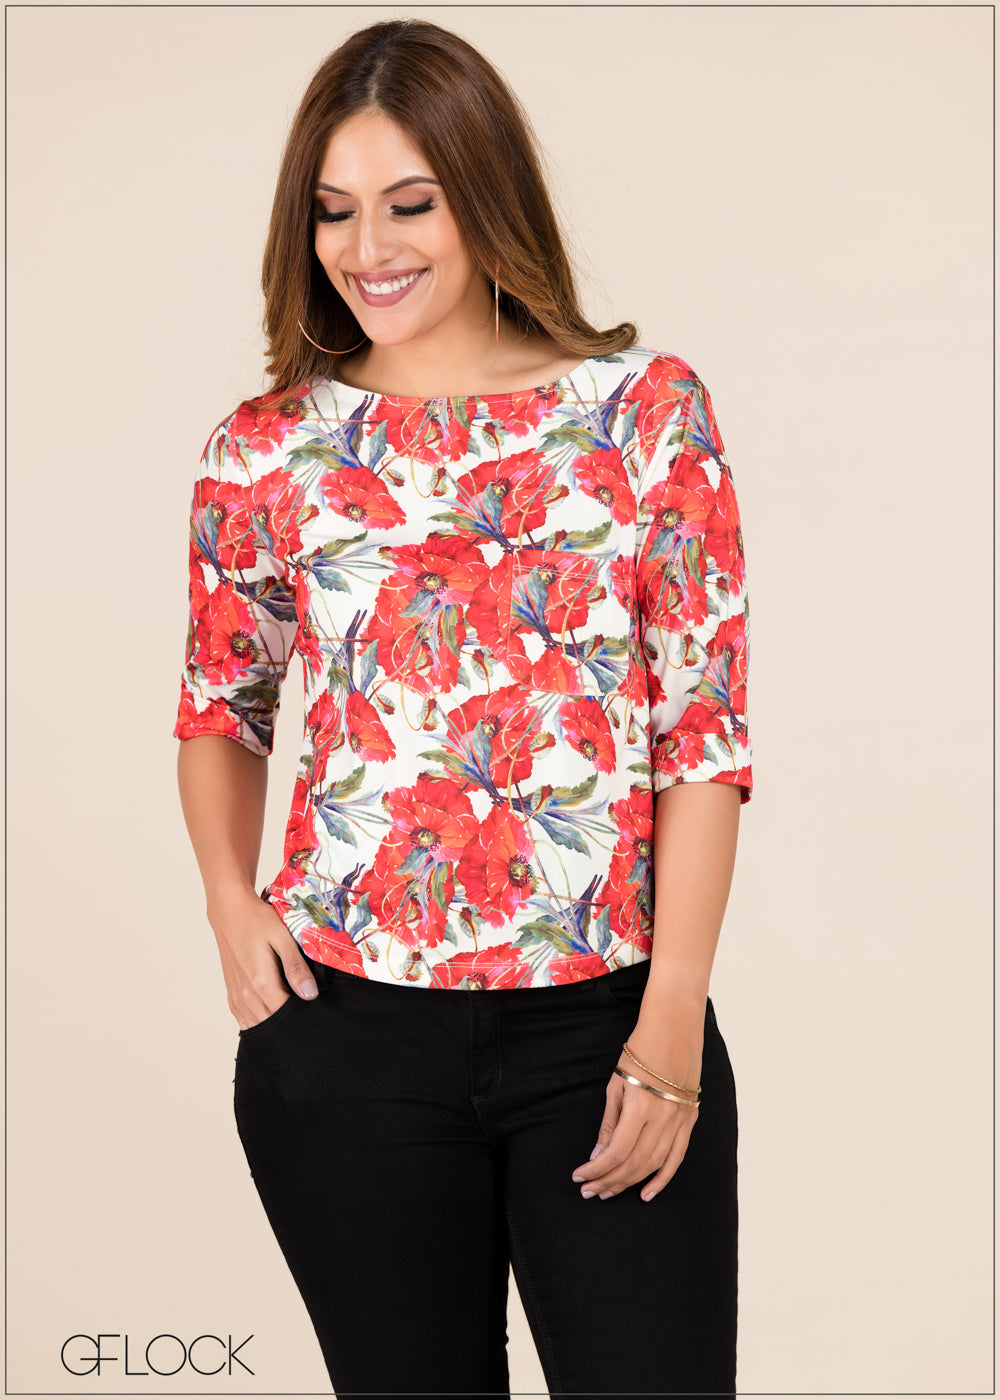 Printed Top - GFLOCK.LK